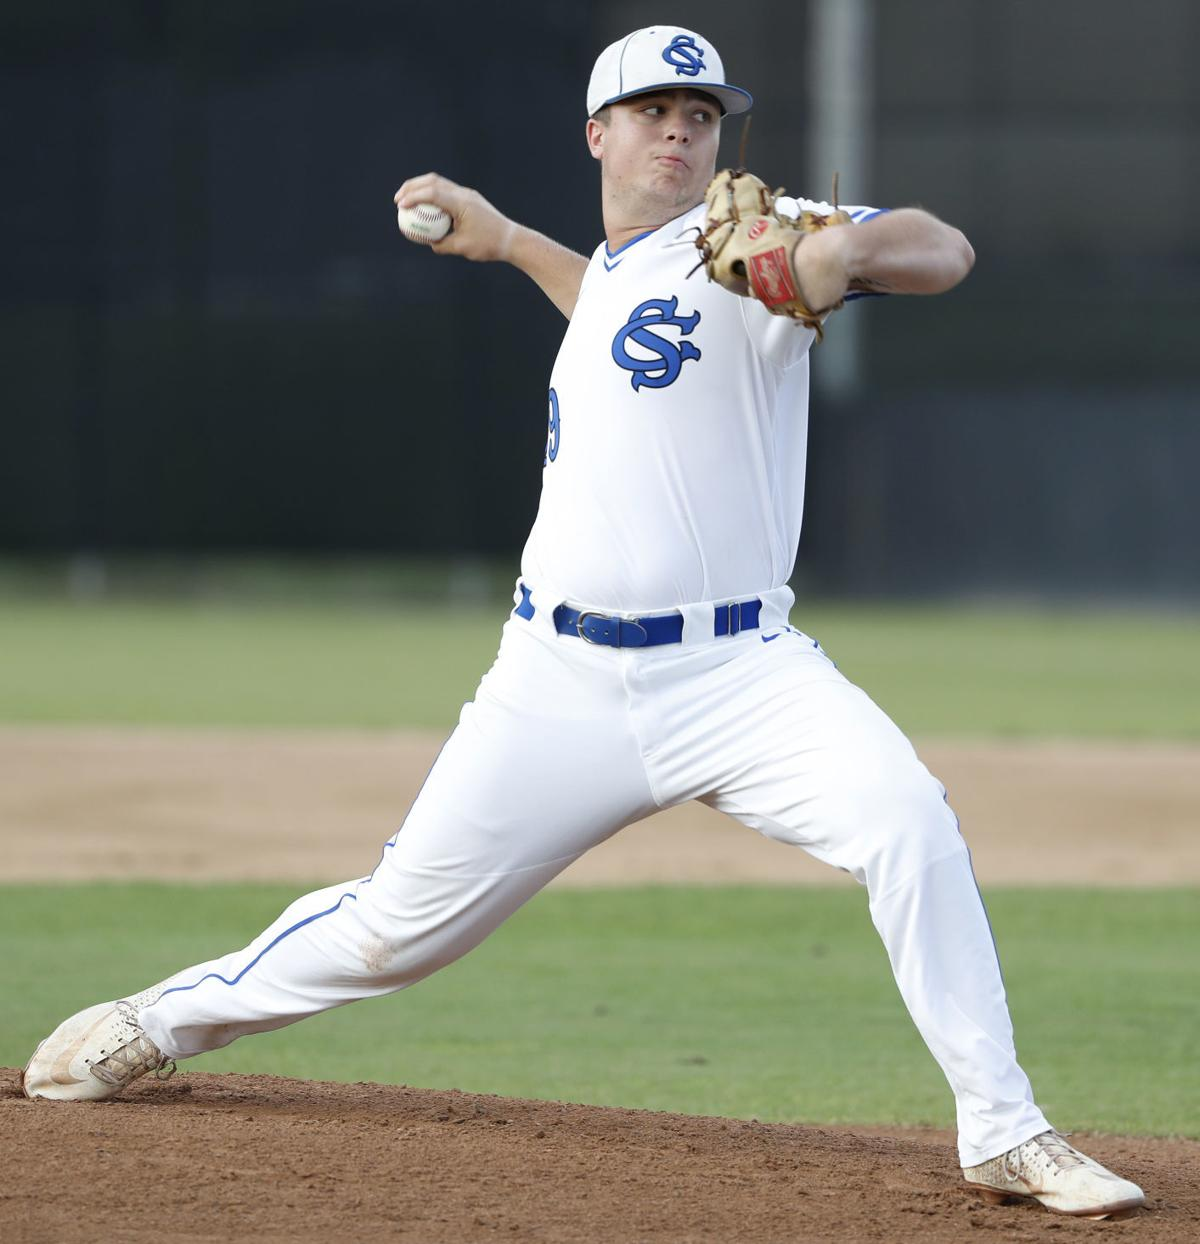 Clear Springs vs. Atascocita playoff baseball